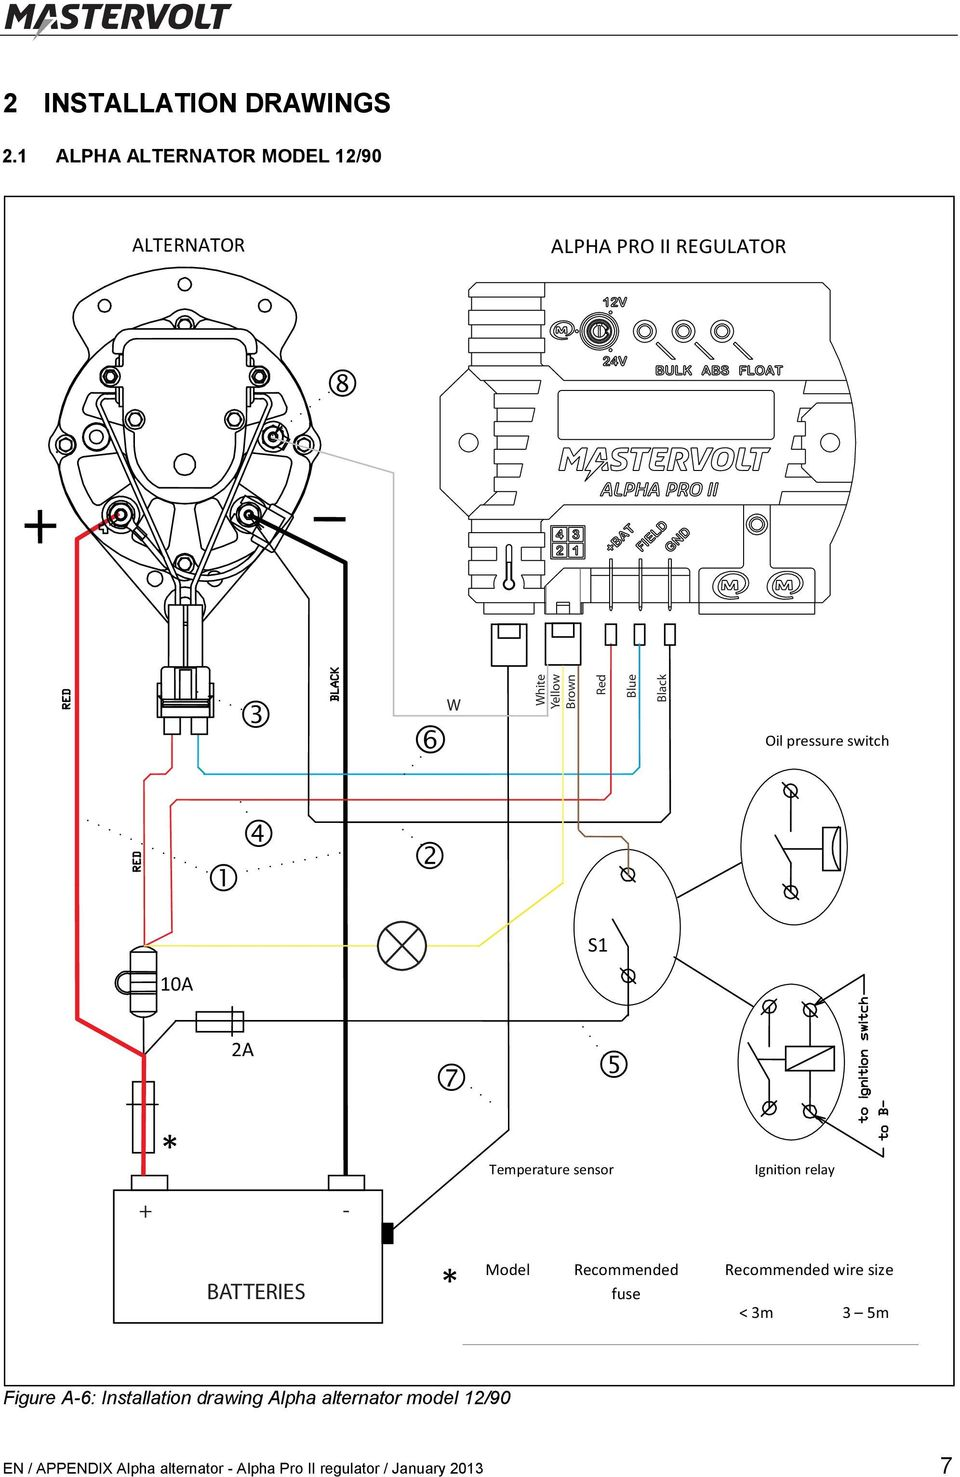 Appendix Anhang Annexe Pdf Alpha Rv Wiring Diagram Black Oil Pressure Switch 4 1 2 S1 10a 2a 7 5 Temperature